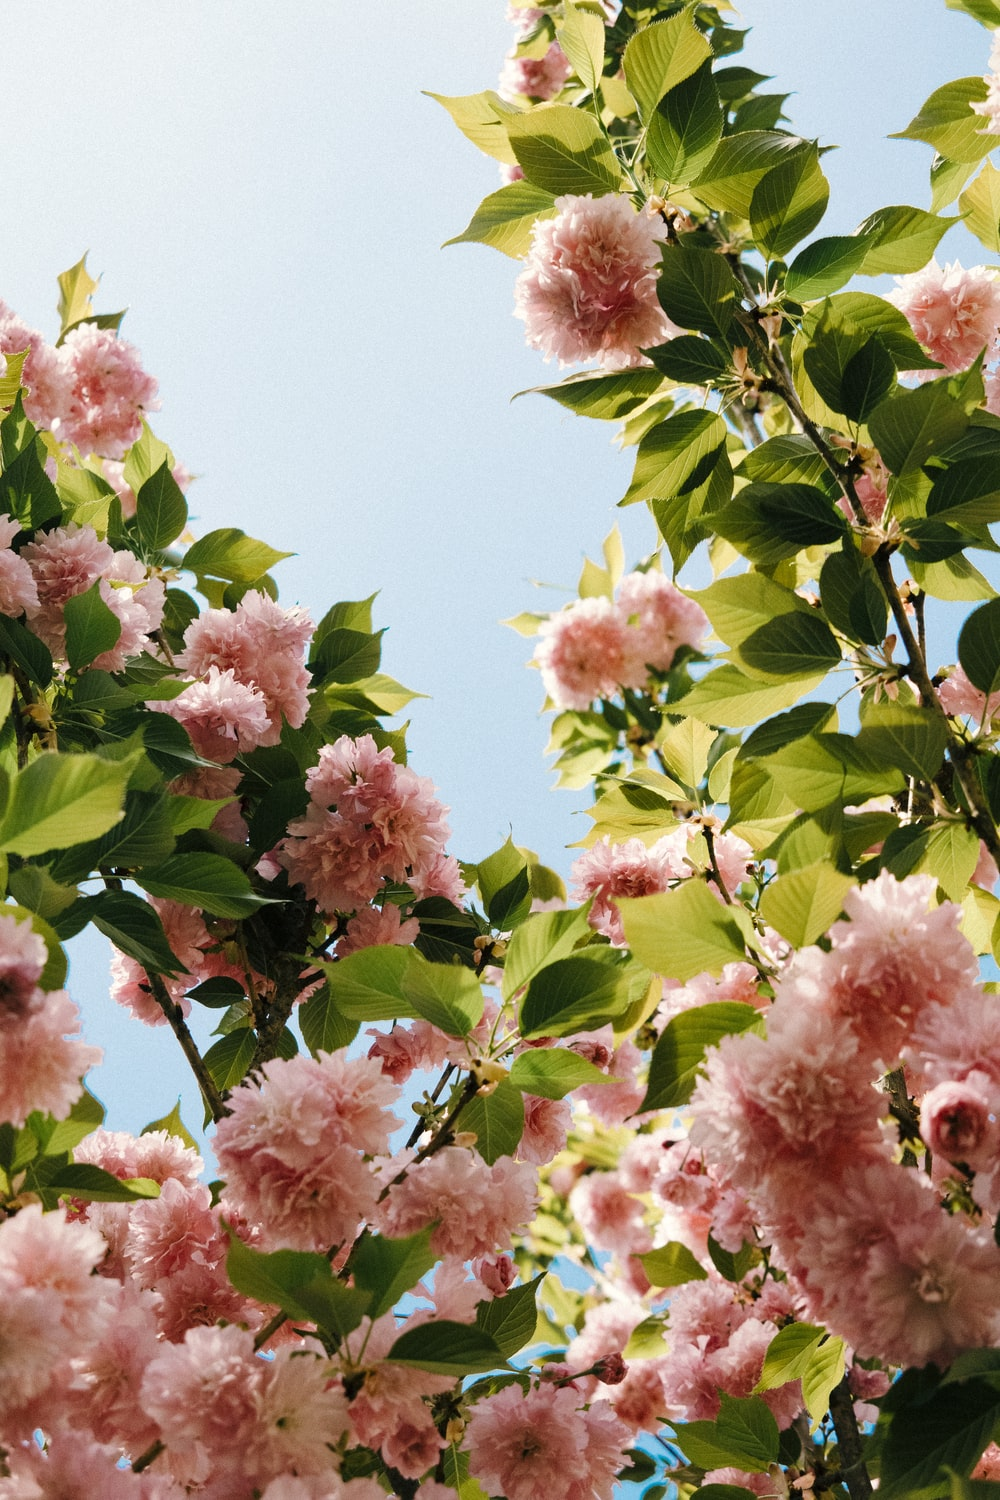 pink flowers with green leaves during daytime